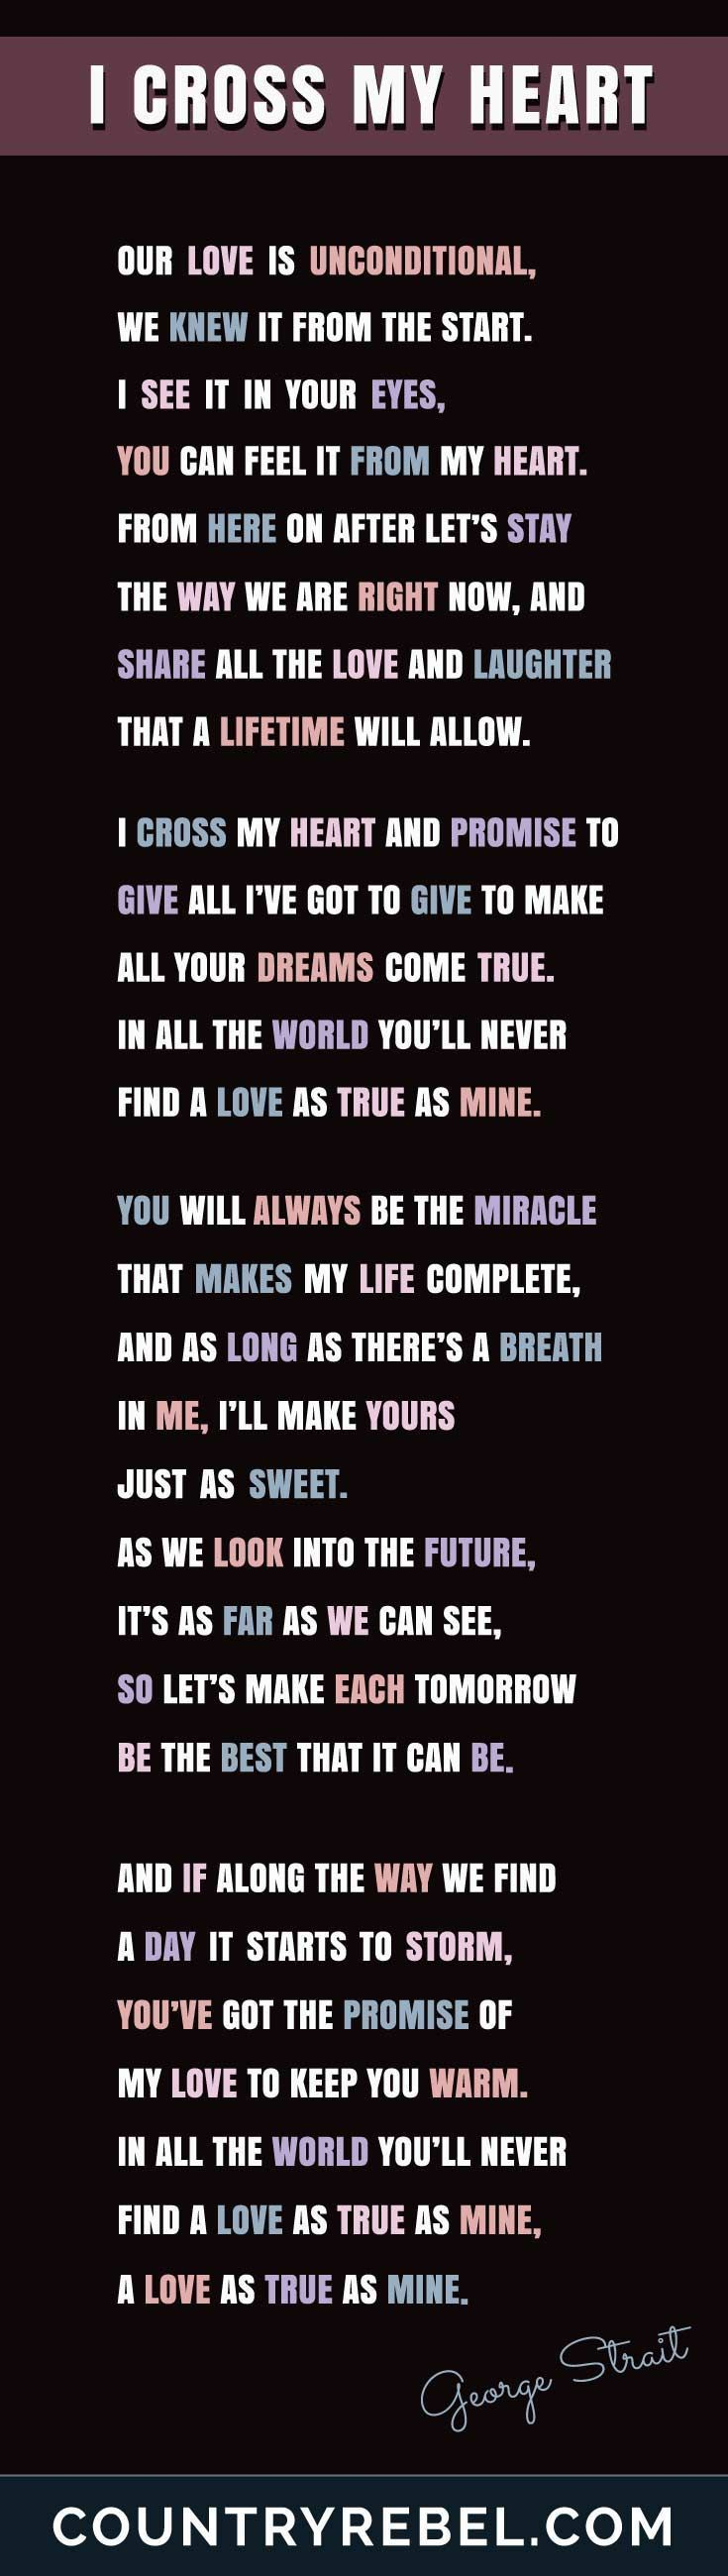 George Strait Love Quotes : george, strait, quotes, George, Strait, Cross, Heart, Country, Songs,, Music, Quotes,, Lyrics